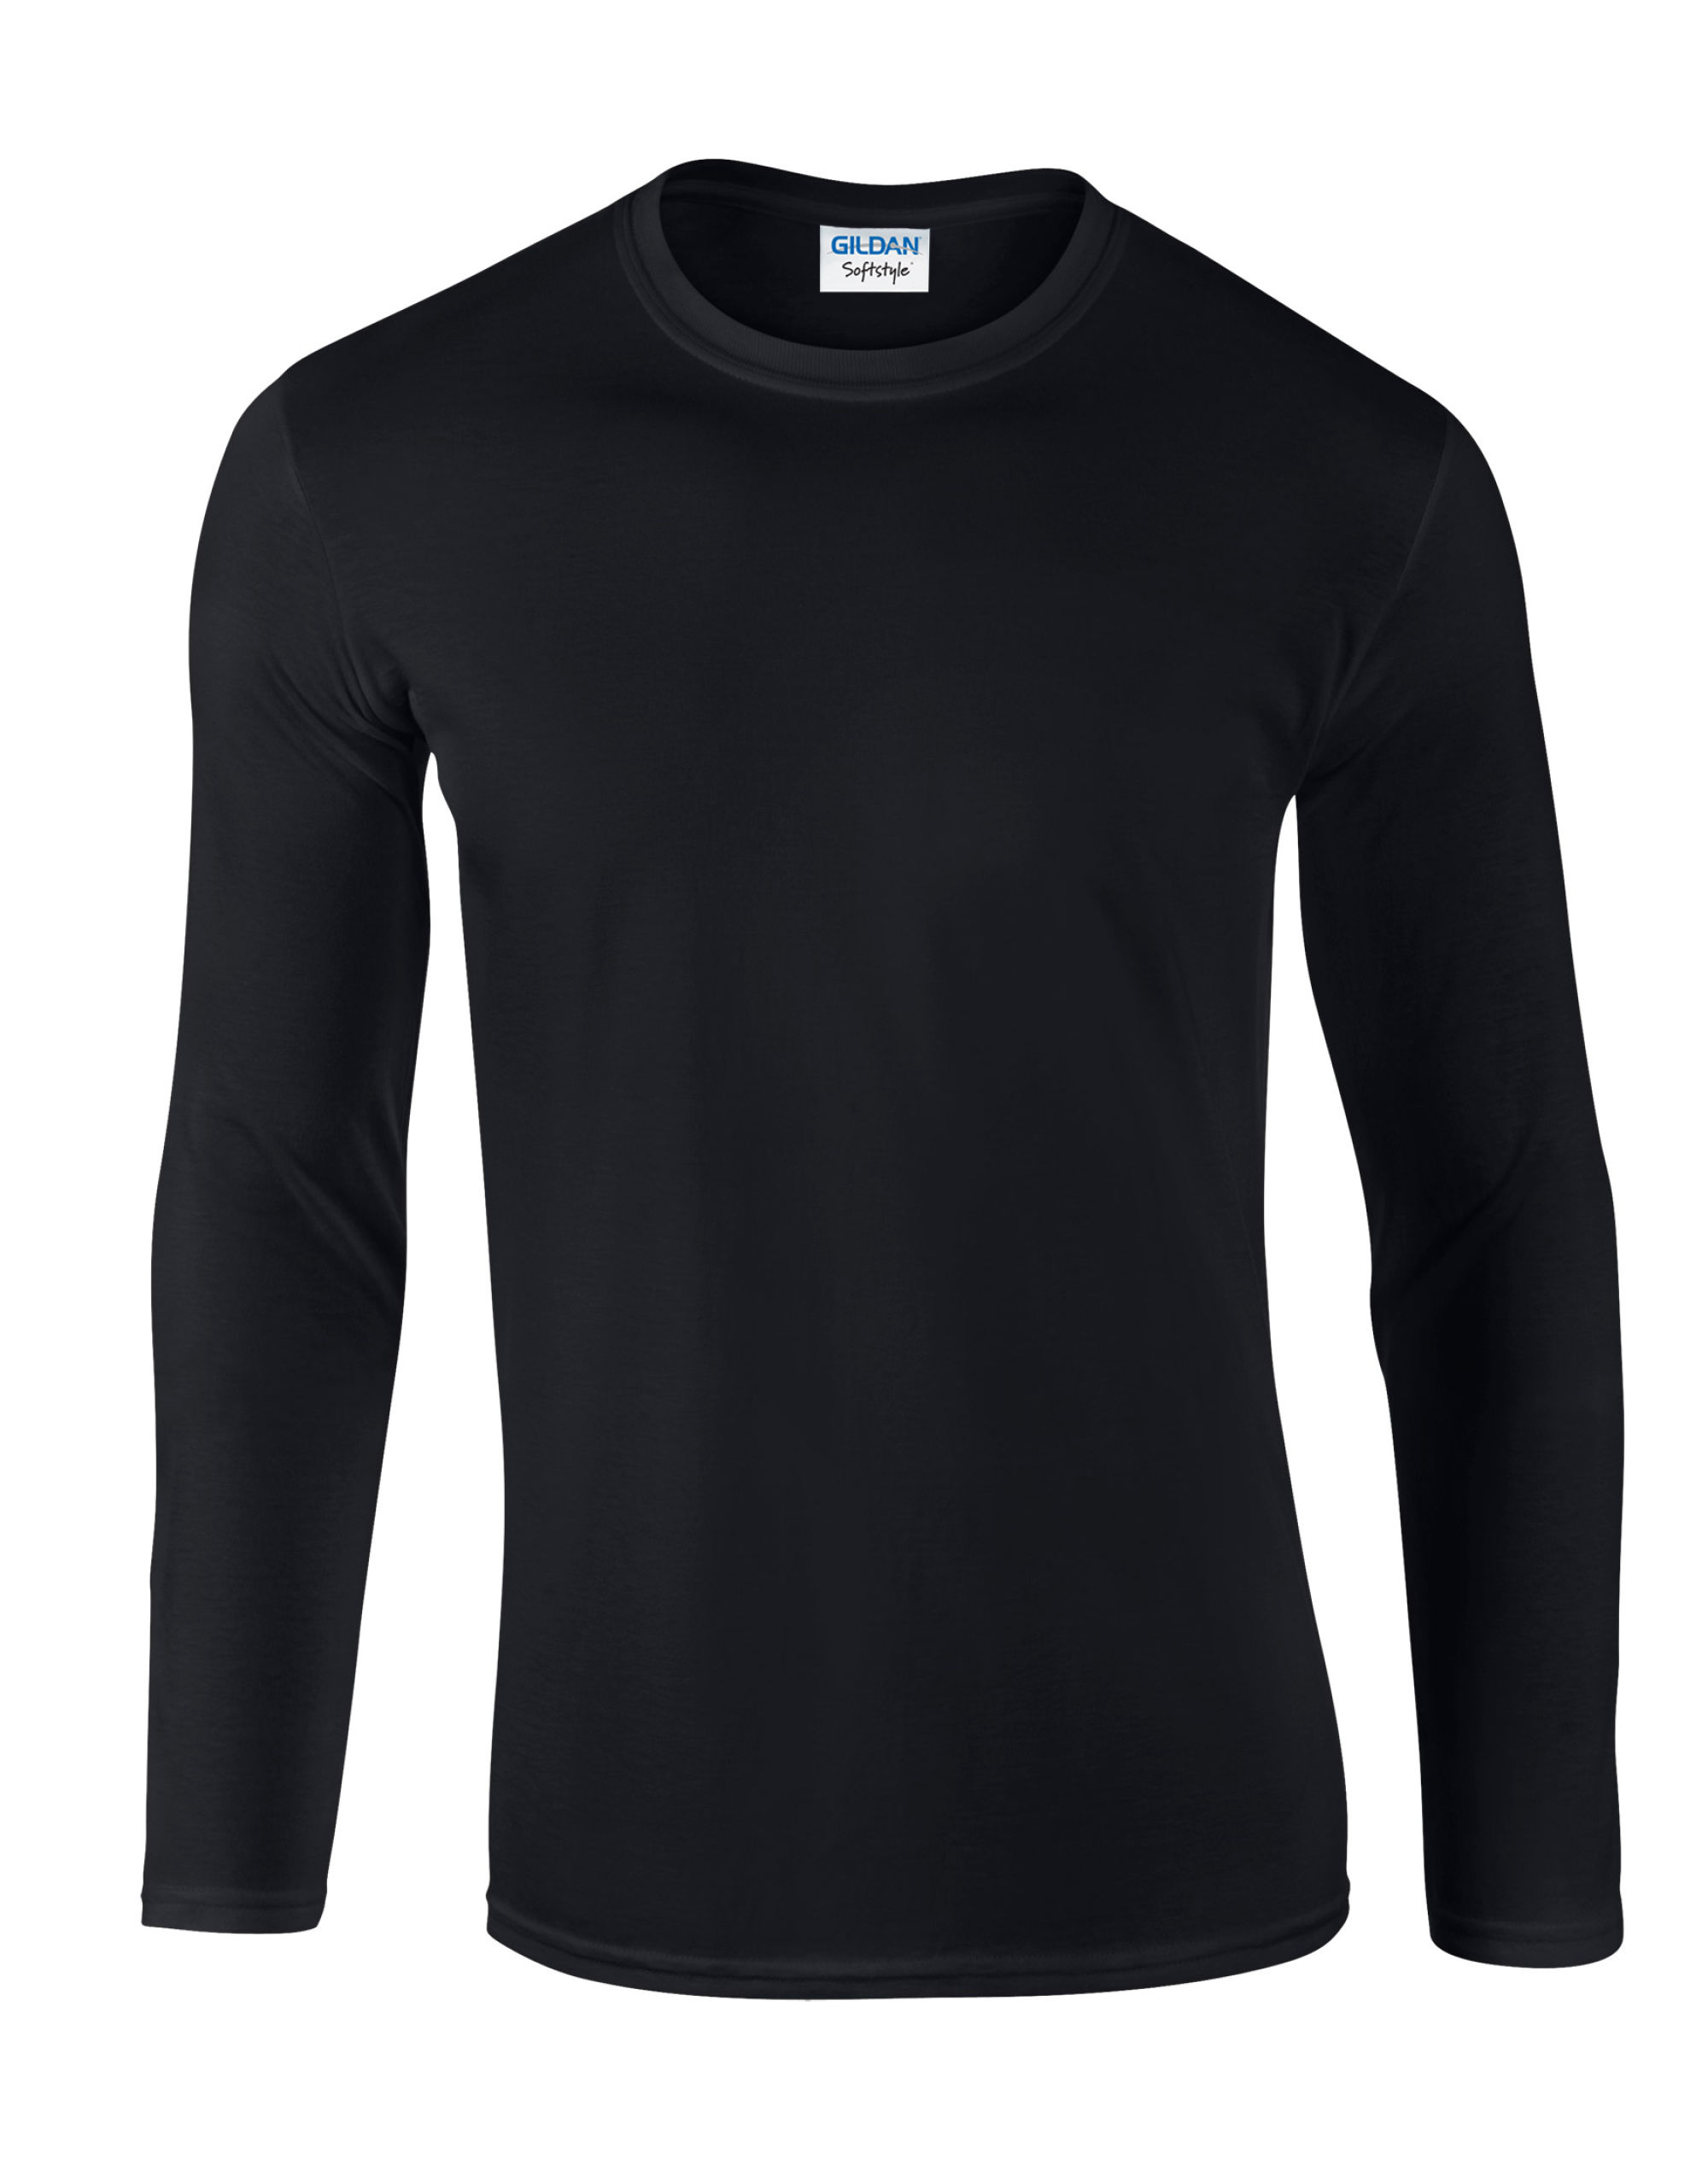 Men's Soft Style Long Sleeve T-Shirt